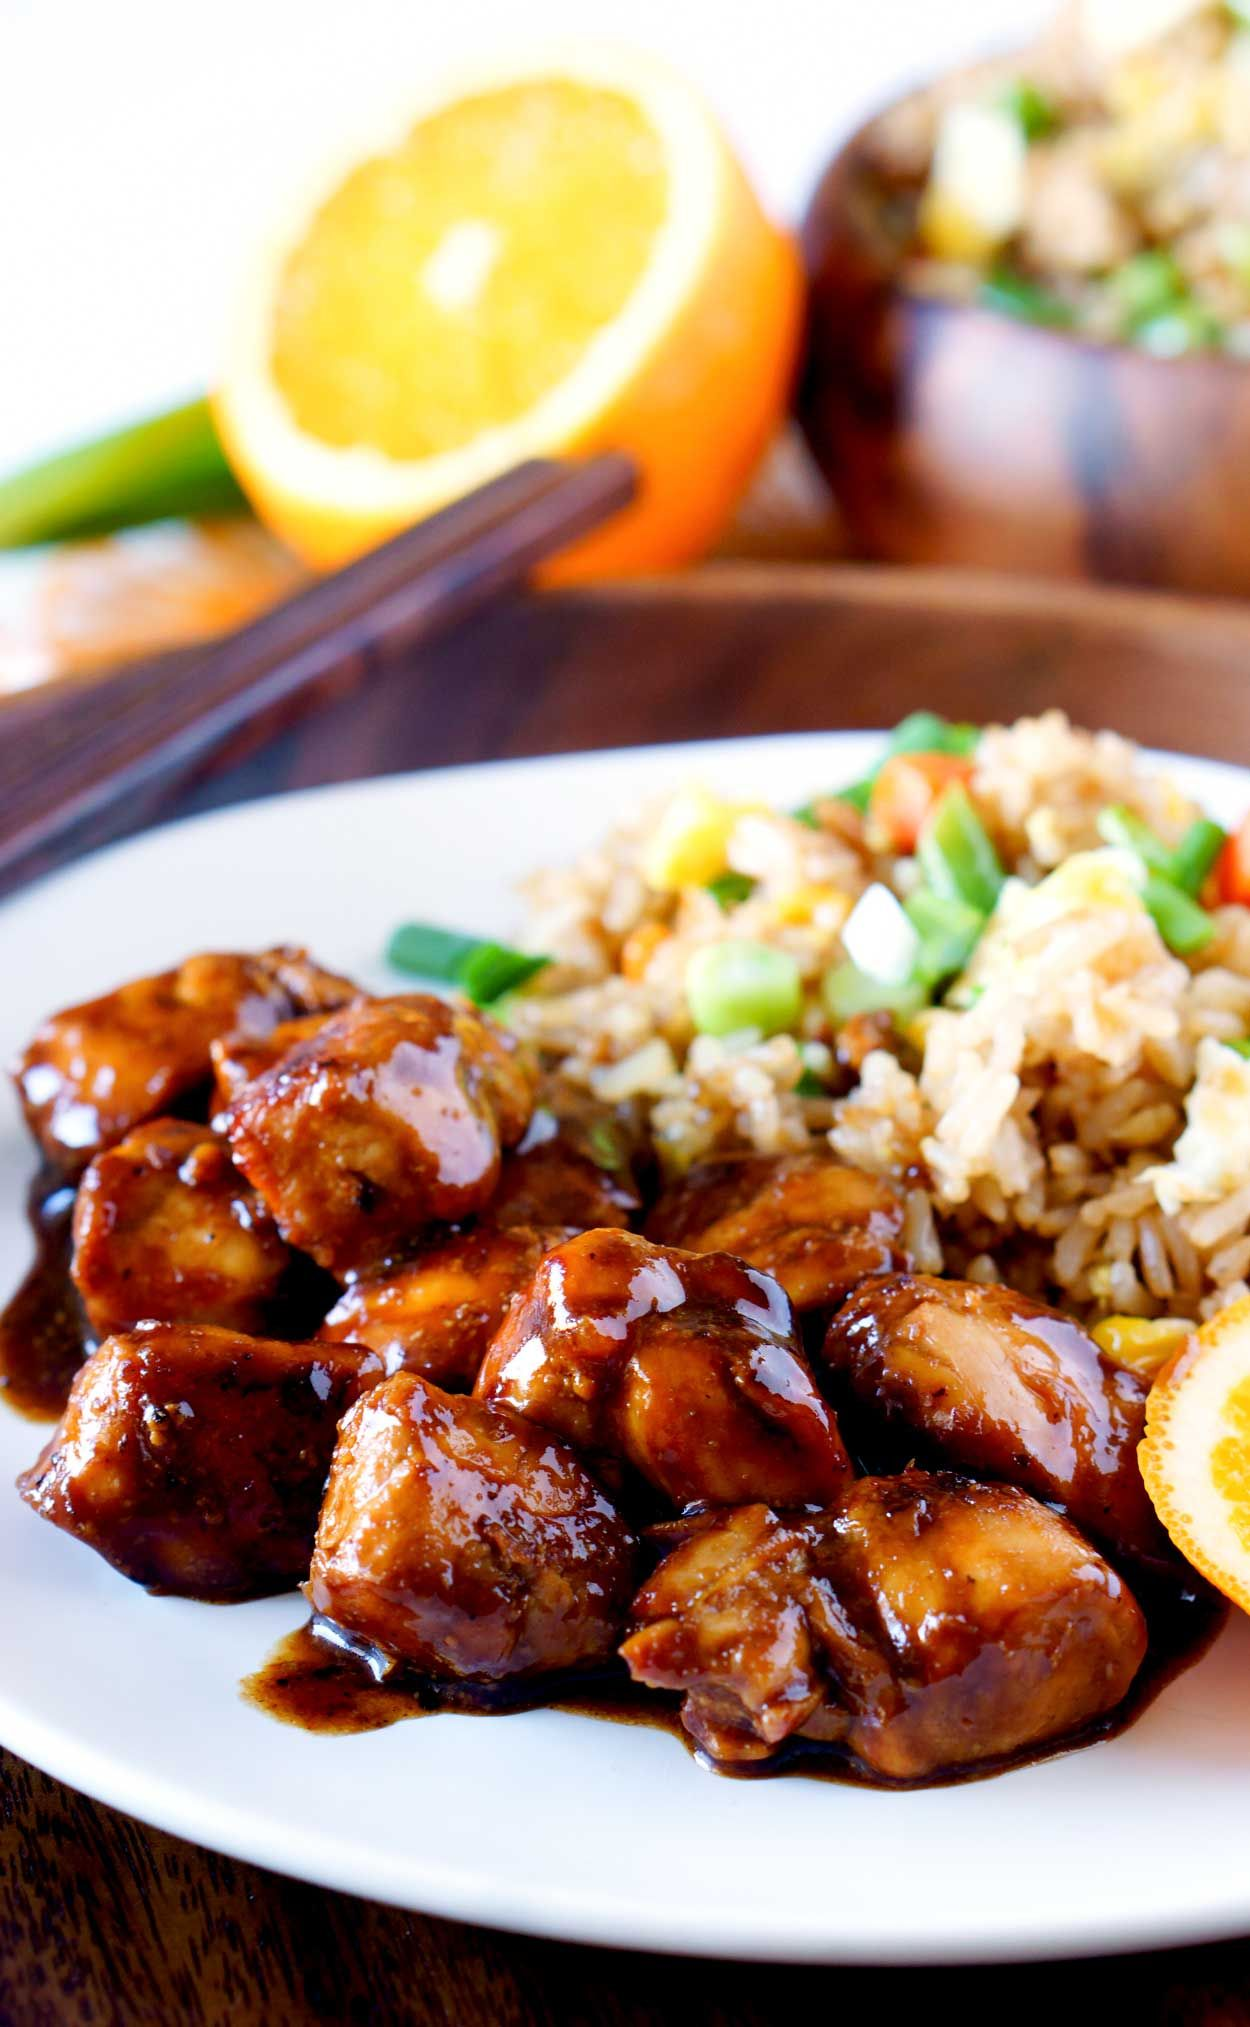 Orange chicken is a chinese take out classic but it isnt exactly orange chicken is a chinese take out classic but it isnt exactly the healthiest for you this orange chicken recipe takes the comfort food classic and forumfinder Gallery